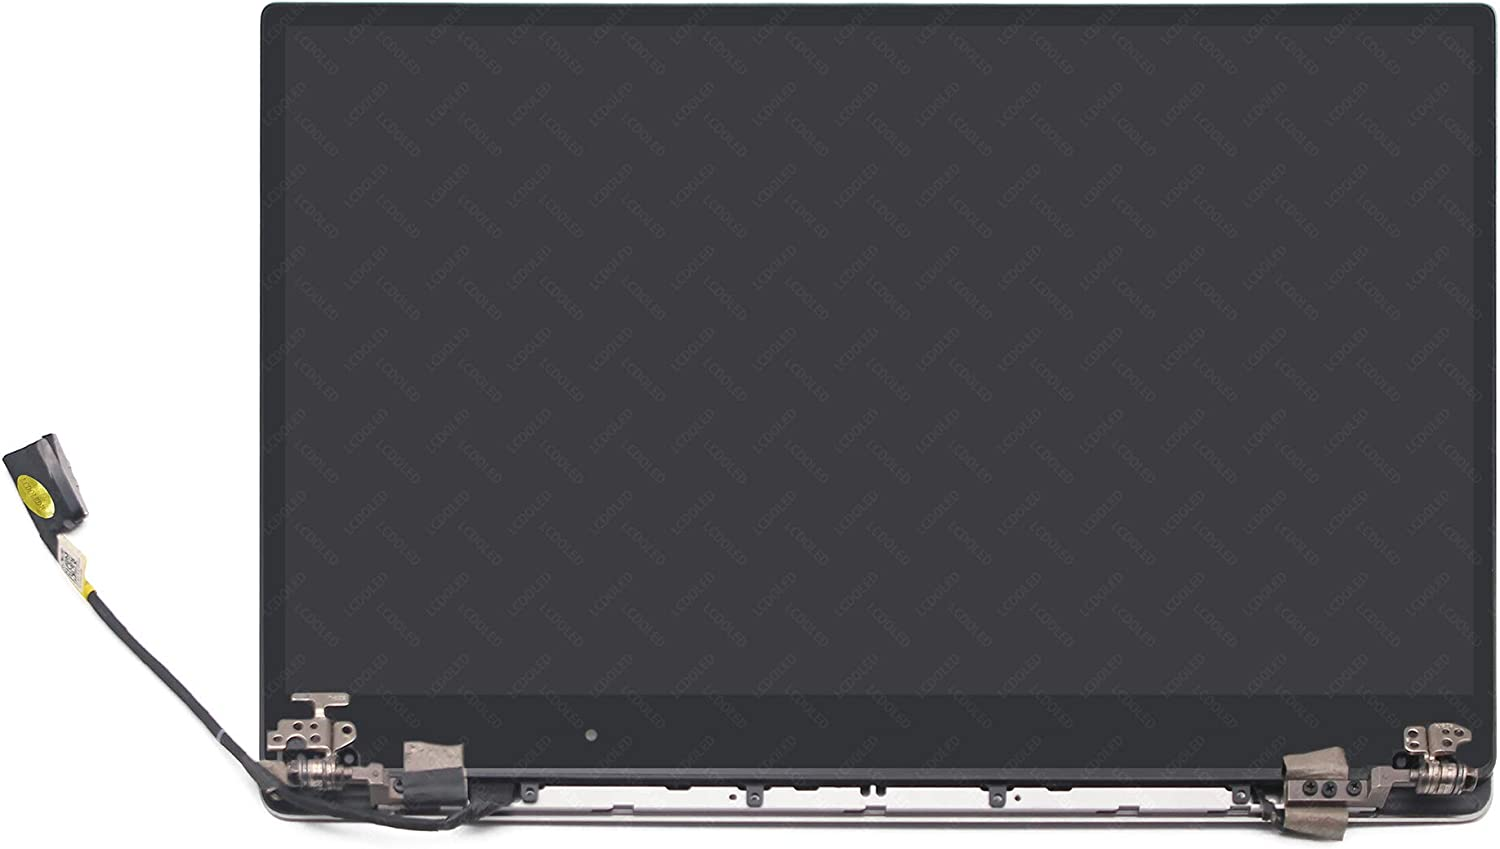 LCDOLED Replacement 99% New 15.6 inches UHD 4K IPS Full LCD Display Touch Digitizer Screen Complete Assembly for Dell XPS 15 9550 9560 Precision 5510 5520 P56F P56F001 (3840x2160 Touch Version)